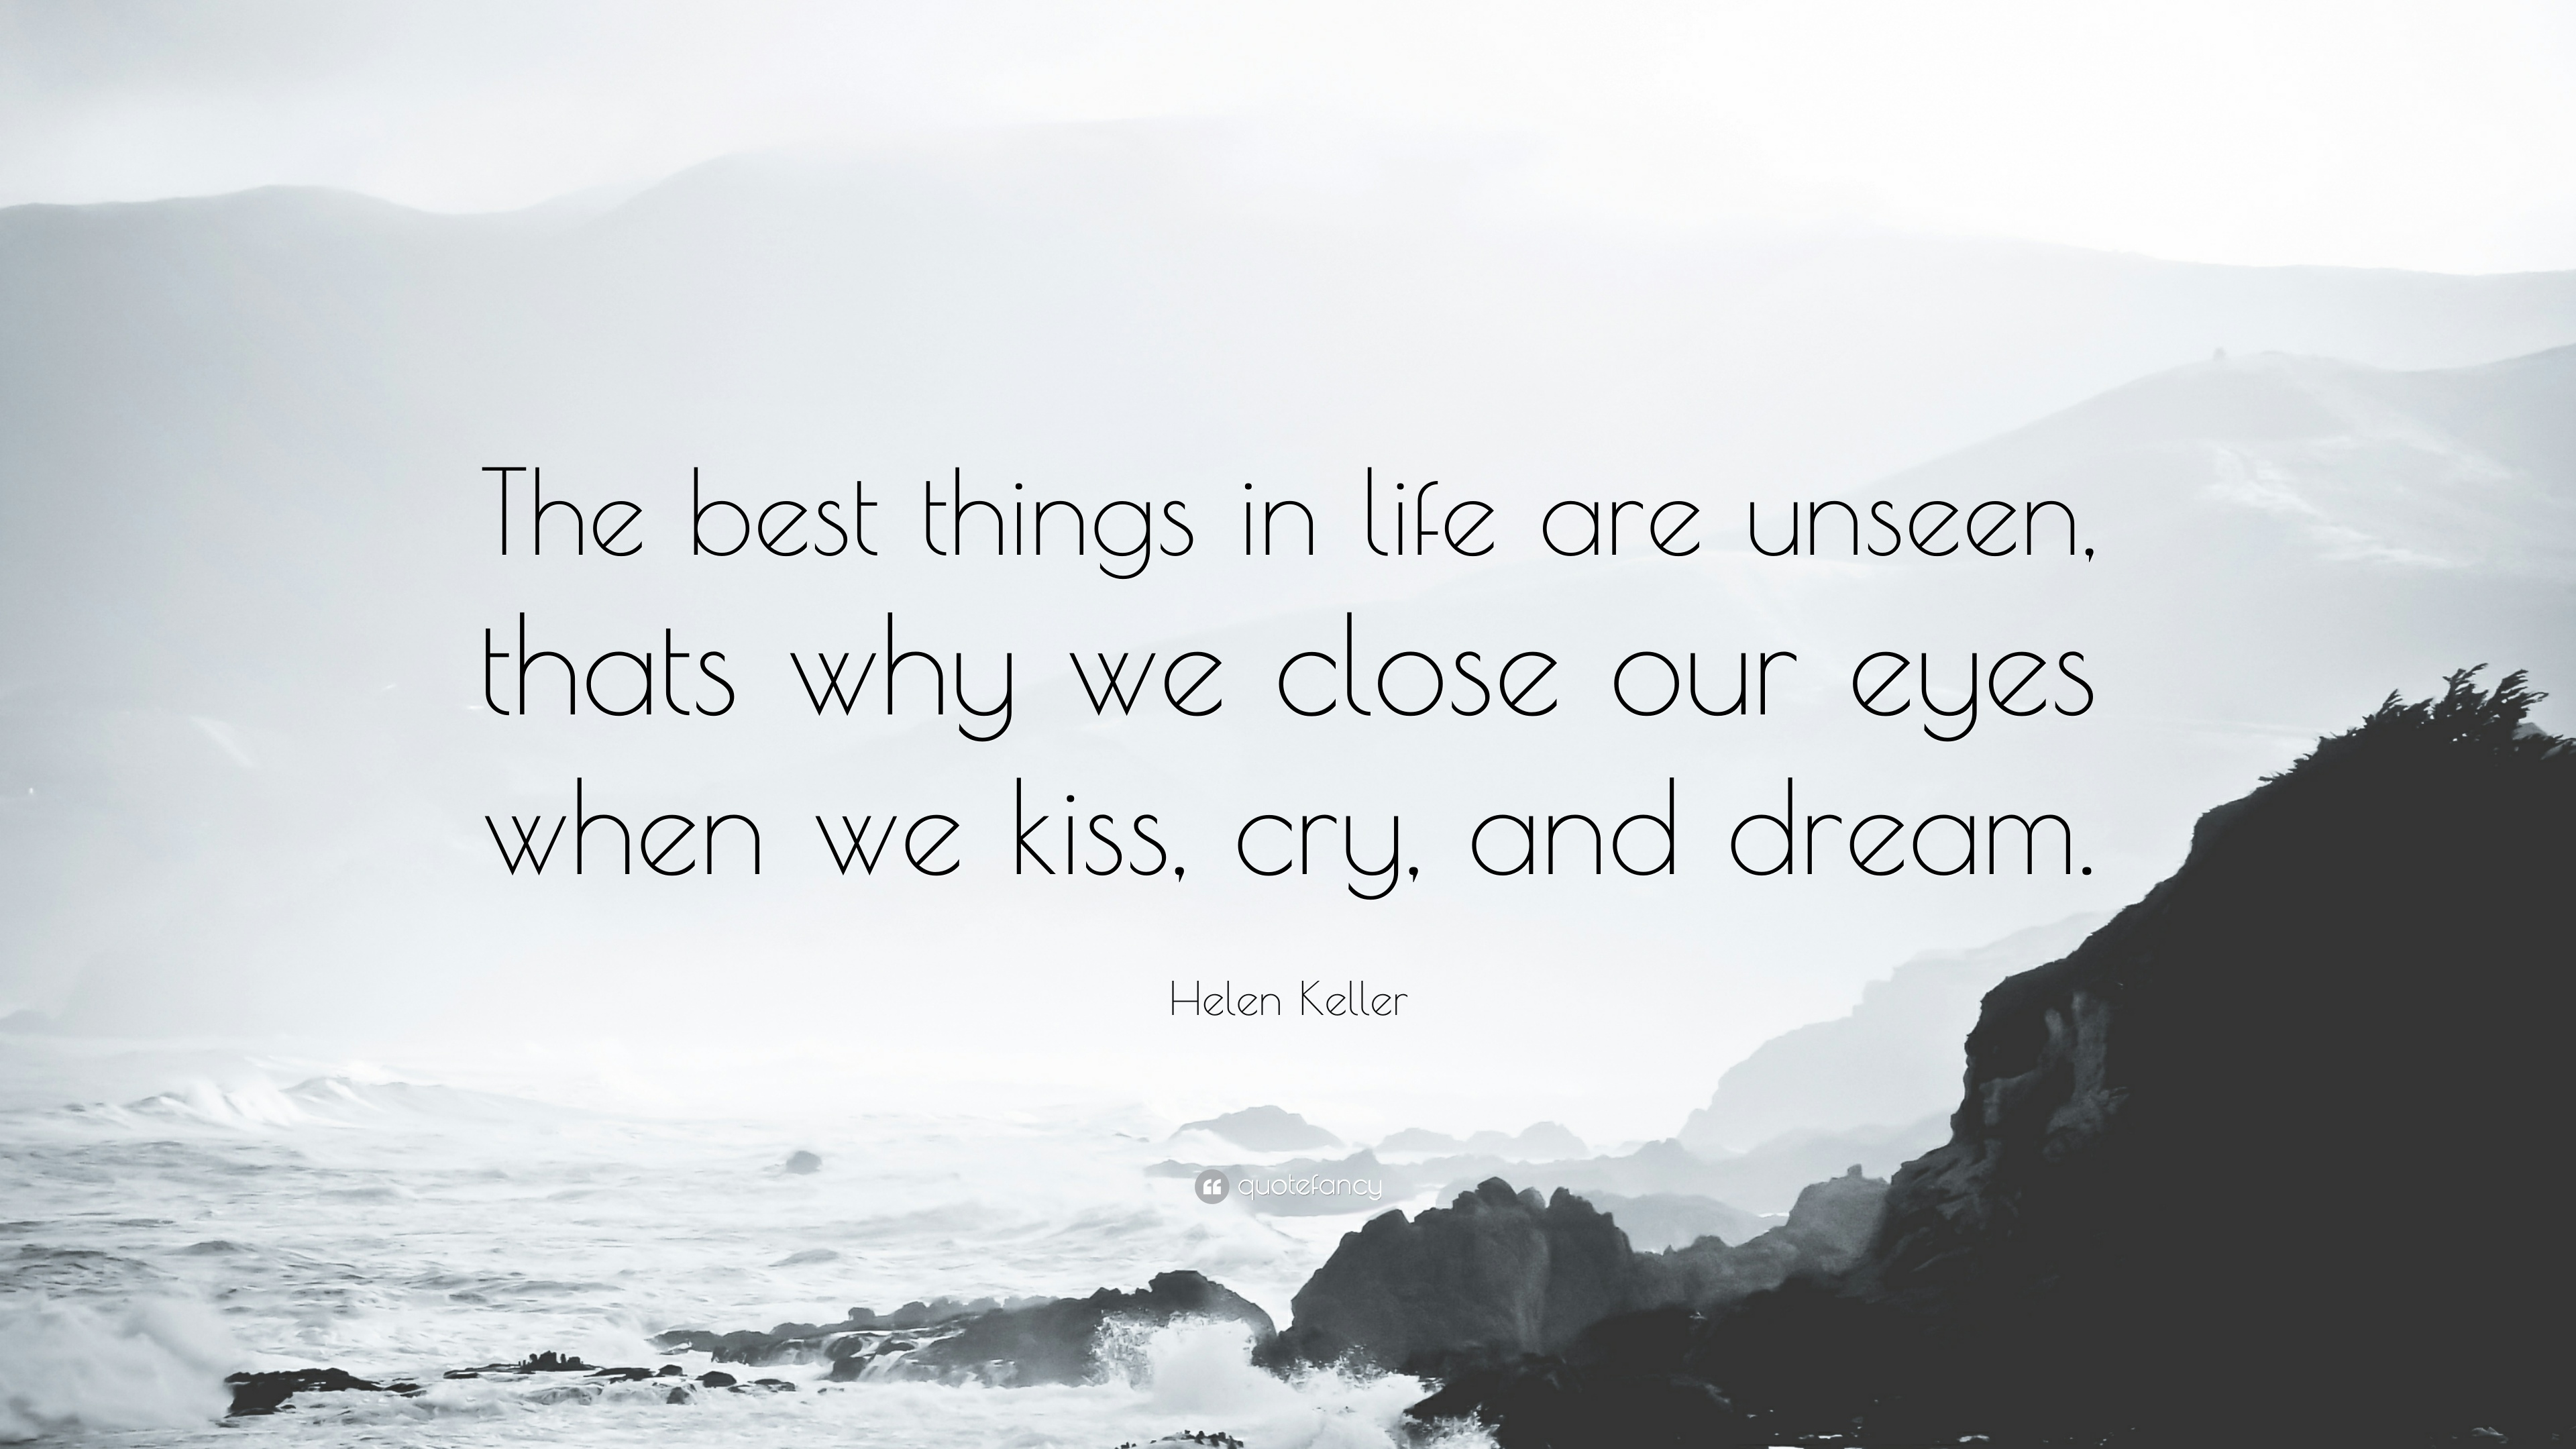 Why cry in a dream 96